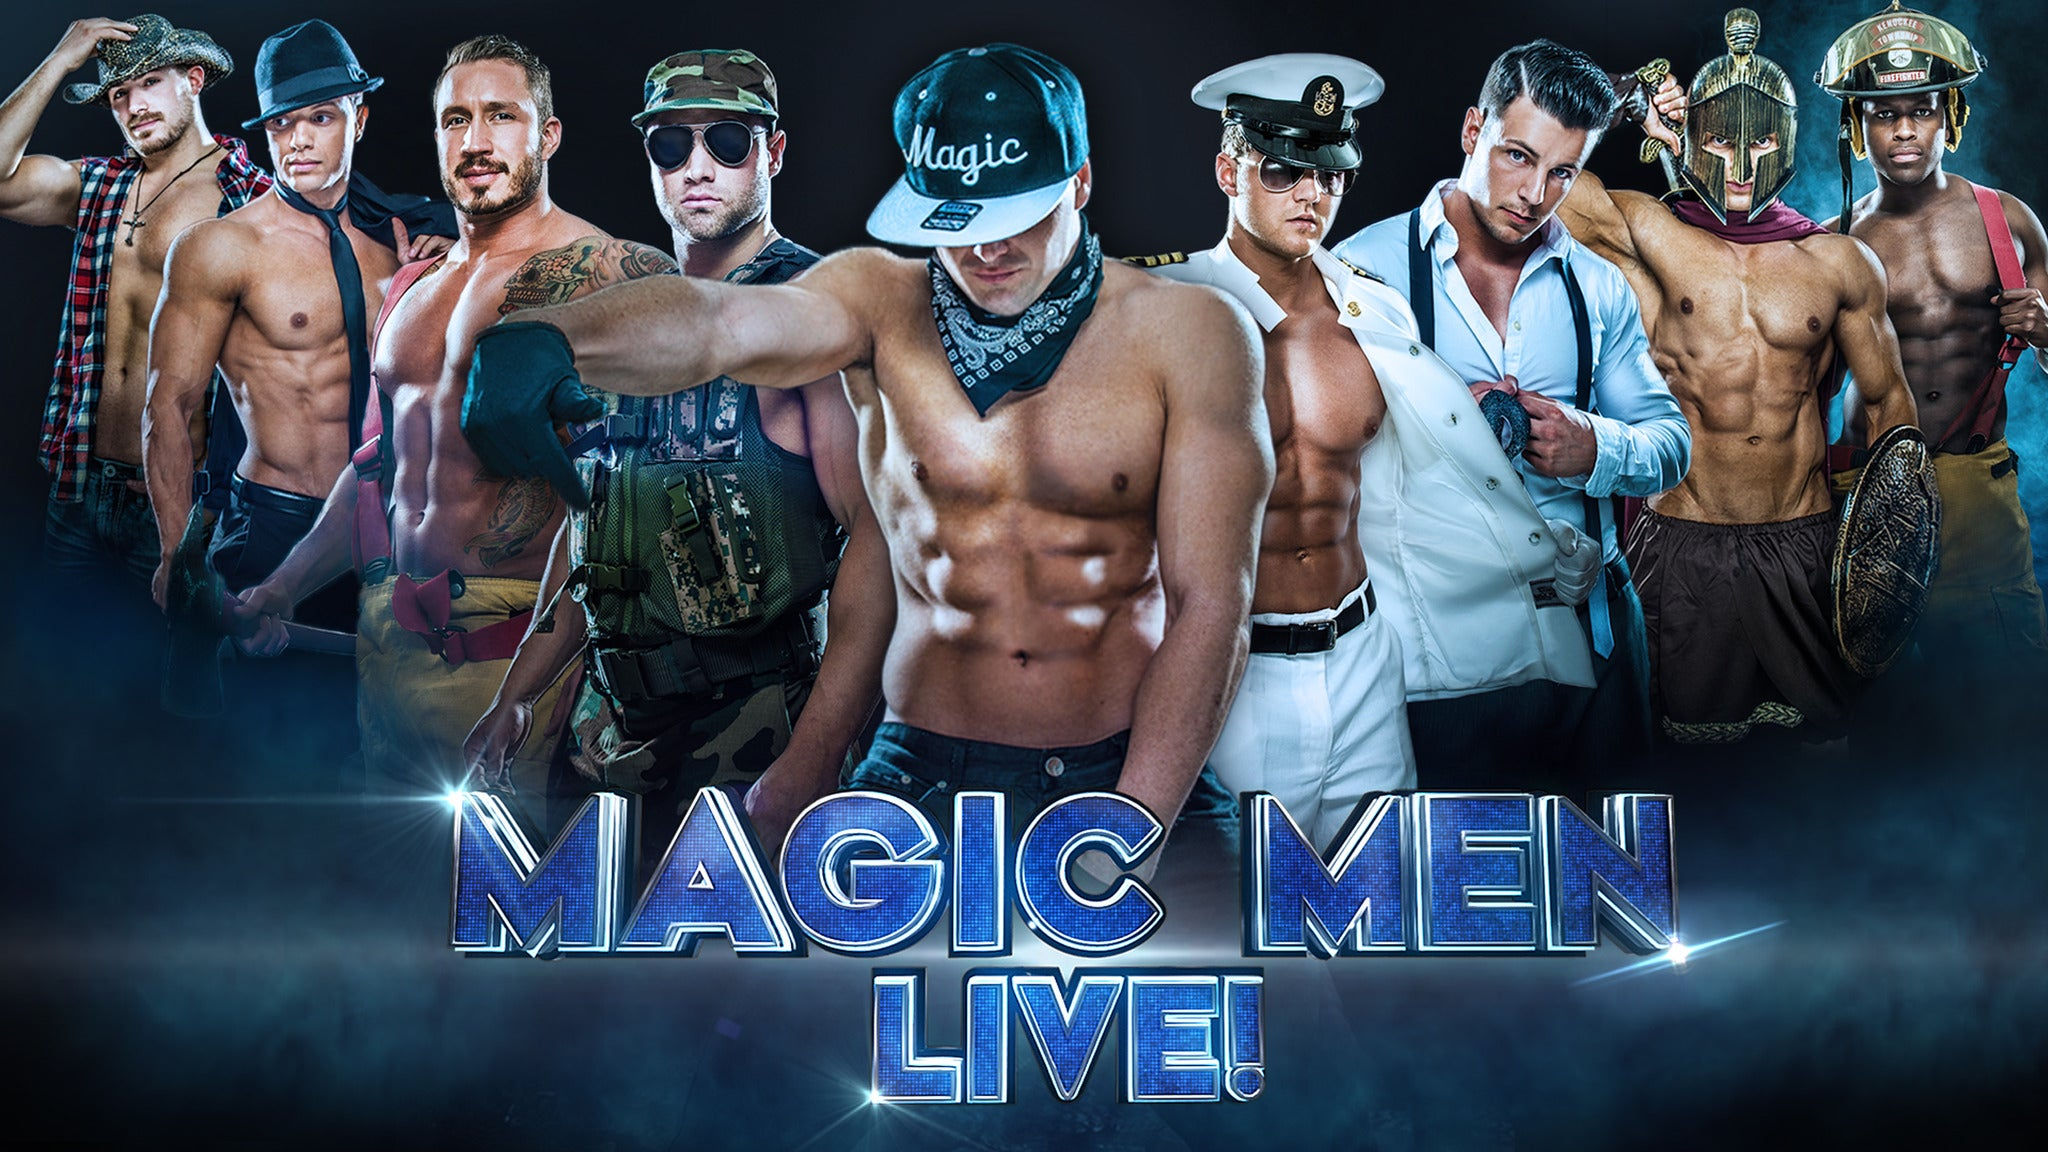 Magic Men LIVE! at Fox Performing Arts Center